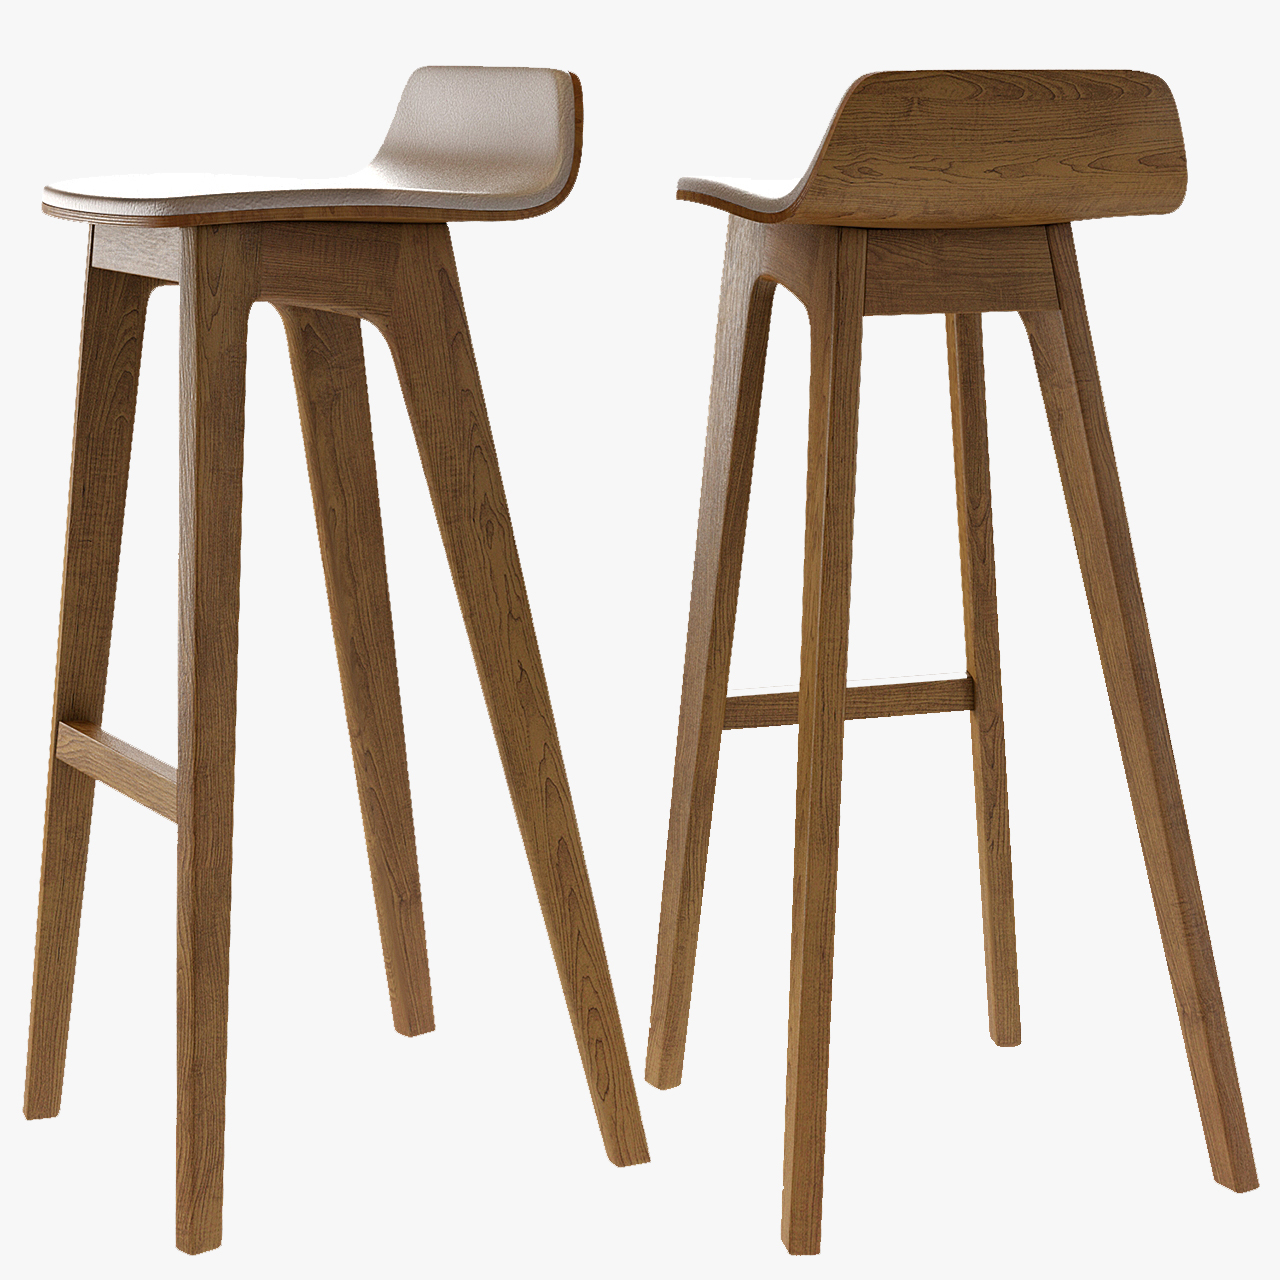 huge discount 206c6 98d37 Morph Bar Stool Chair Wood